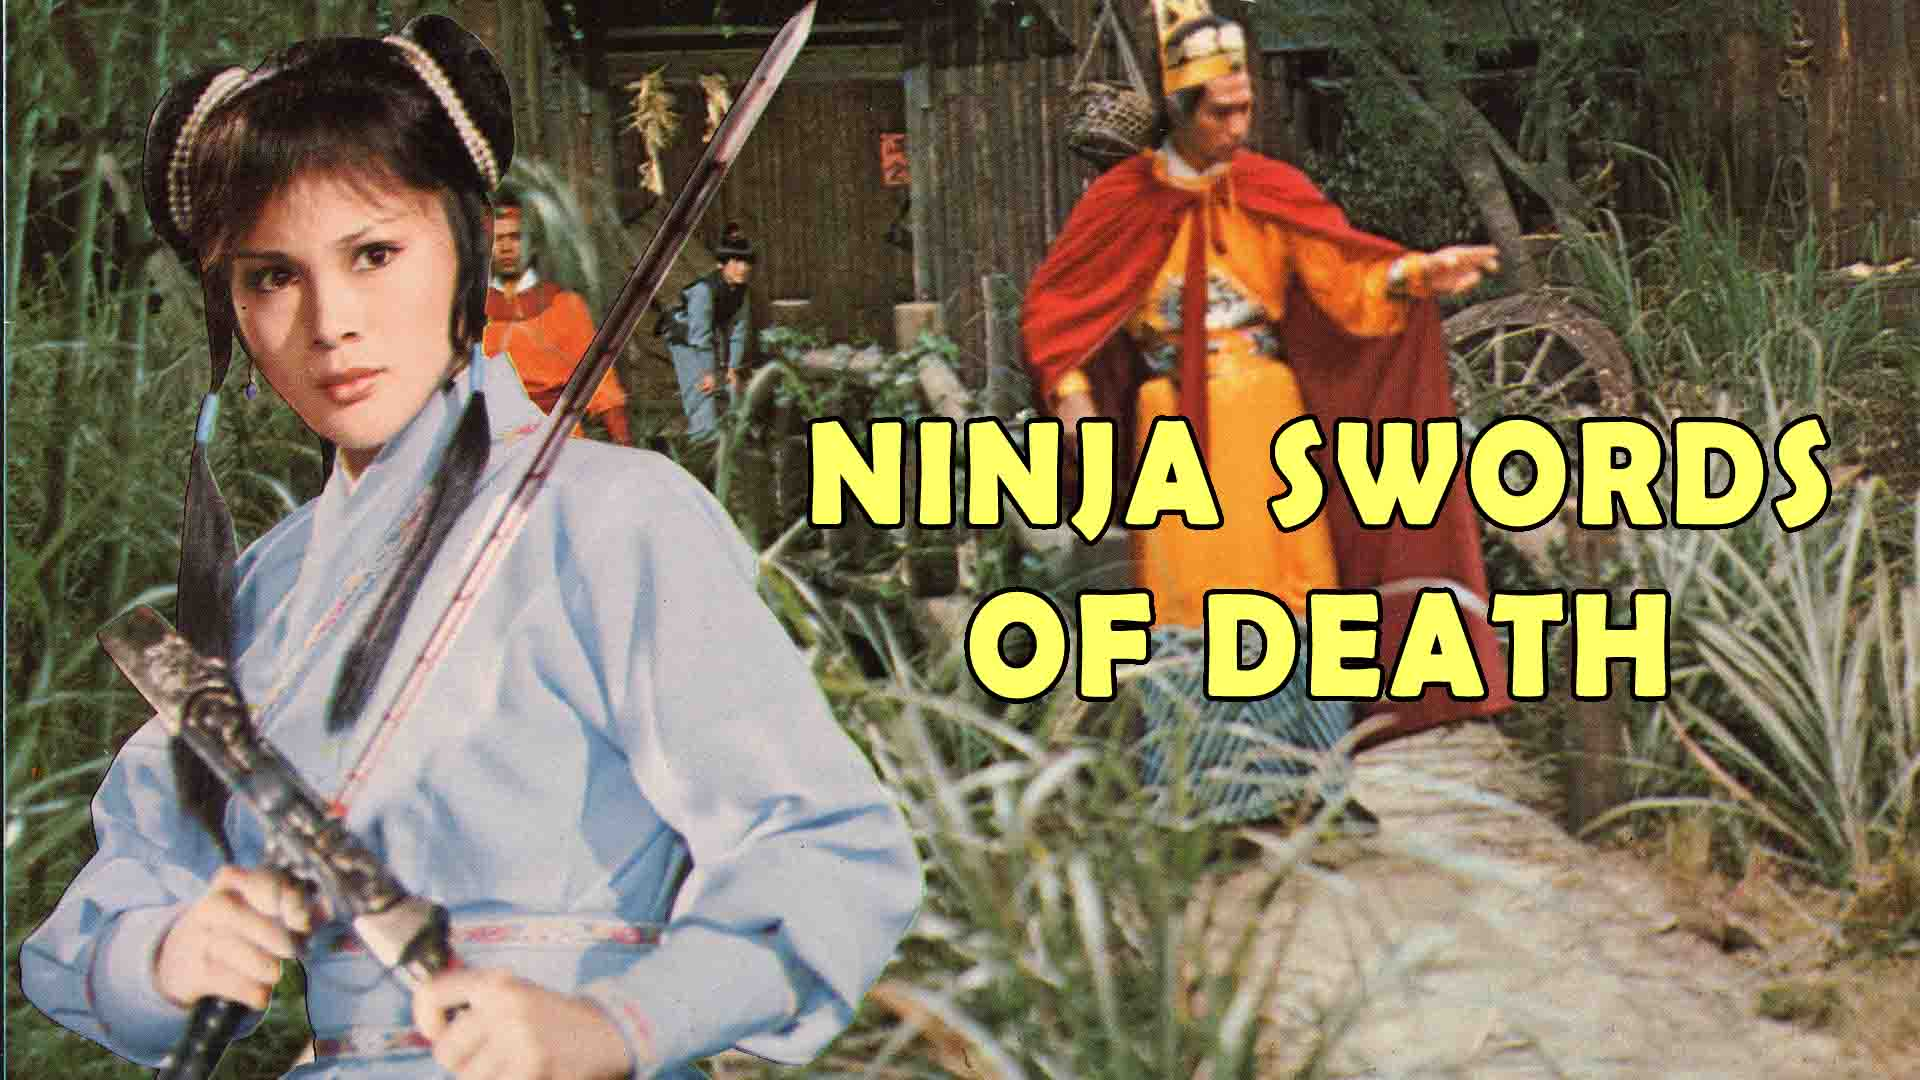 Ninja Swords of Death